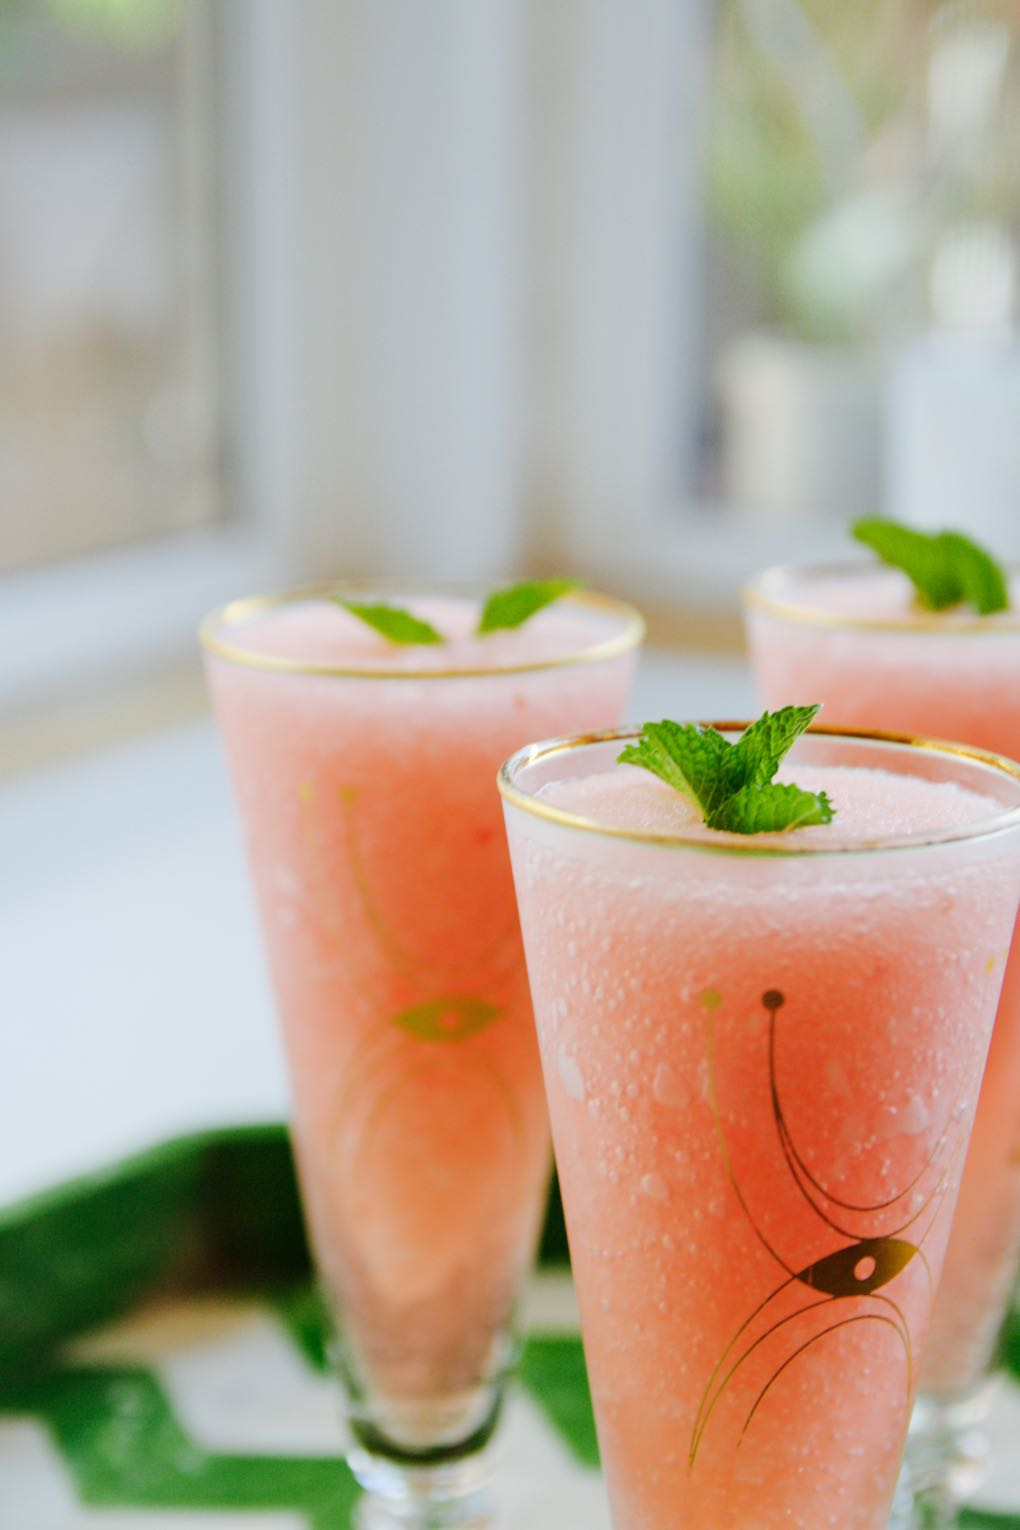 Easy recipe for making frosé or frozen rosé